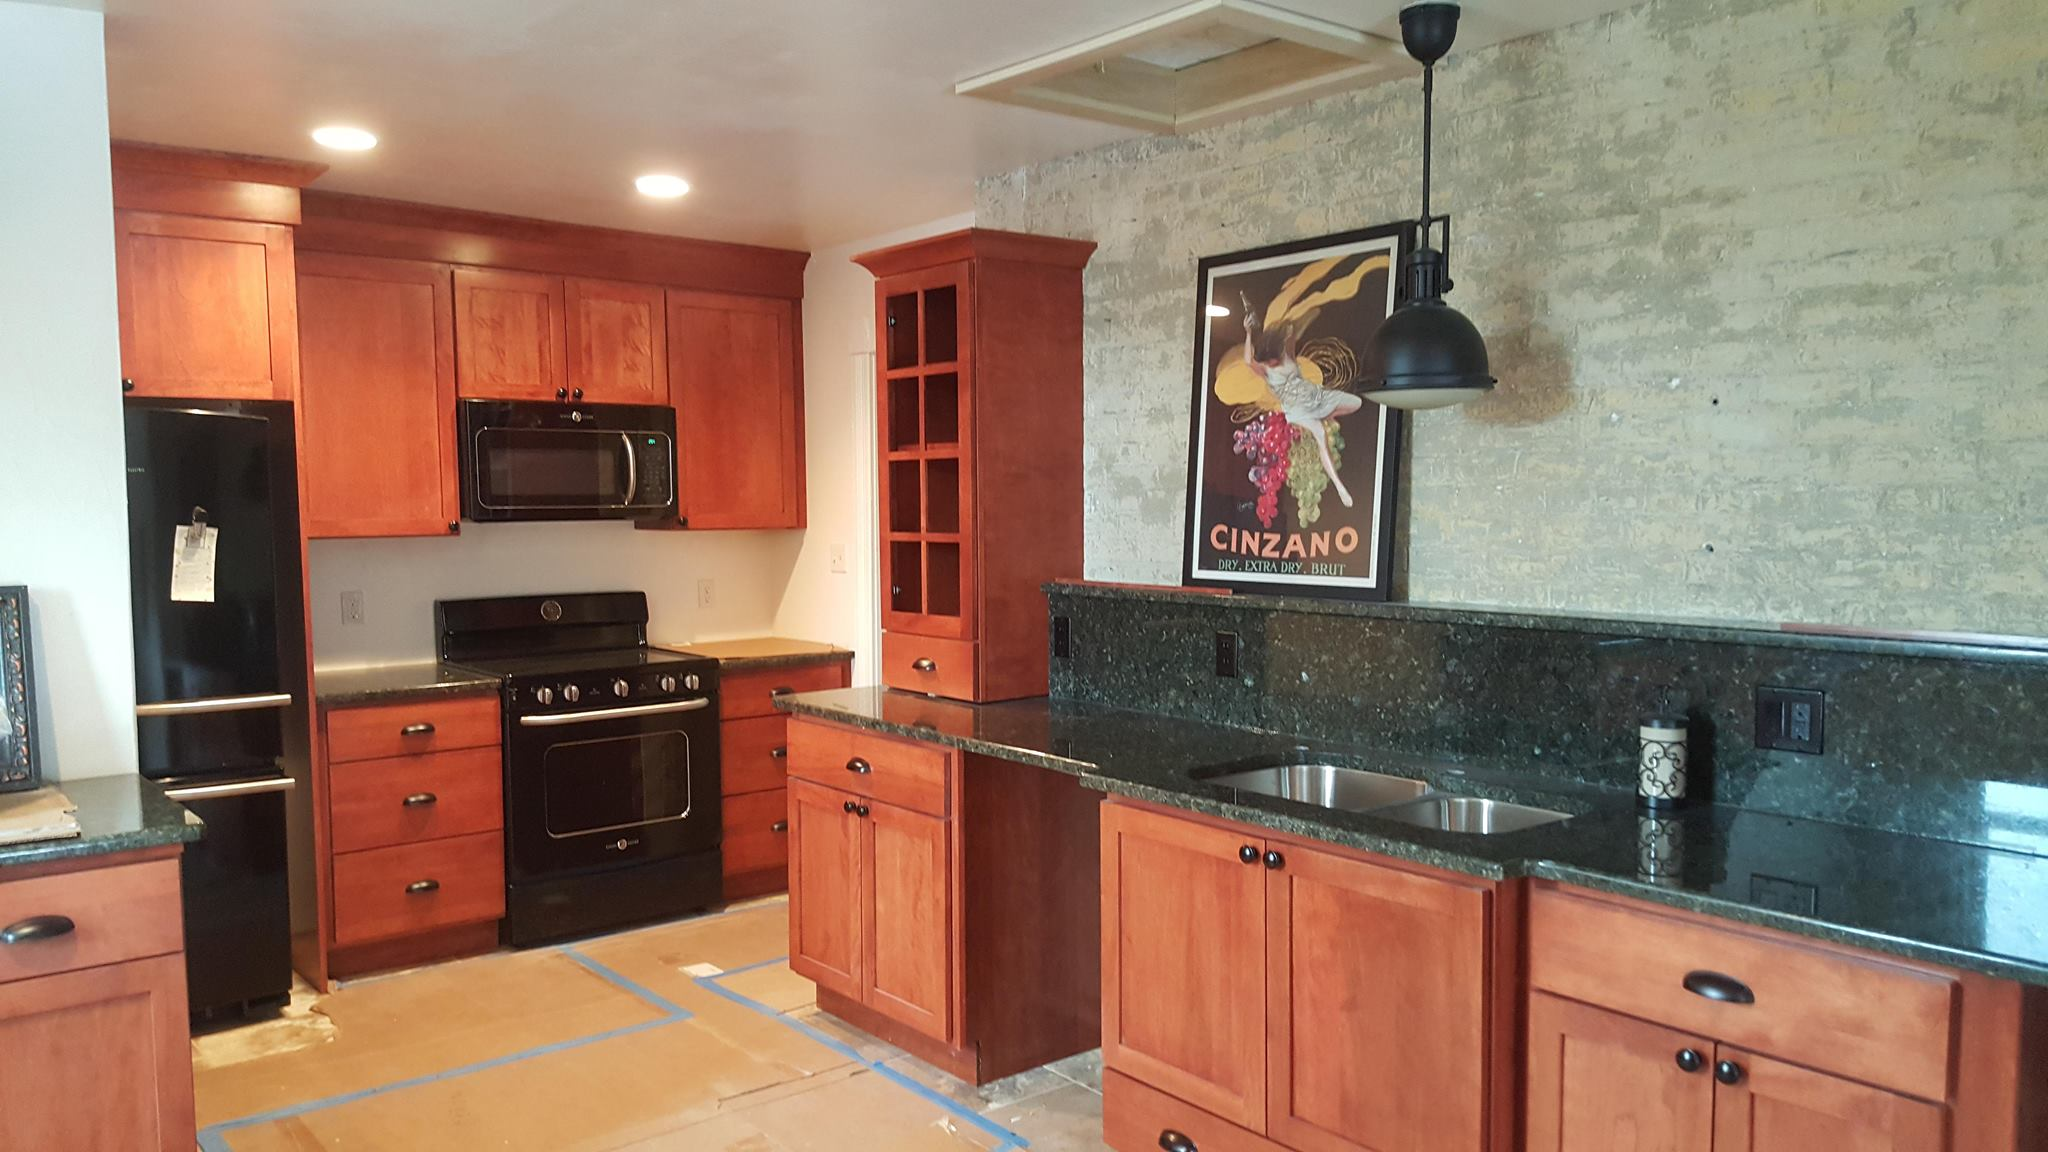 Historic home - This kitchen and combined laundry are in a historic mansion in downtown Kenosha